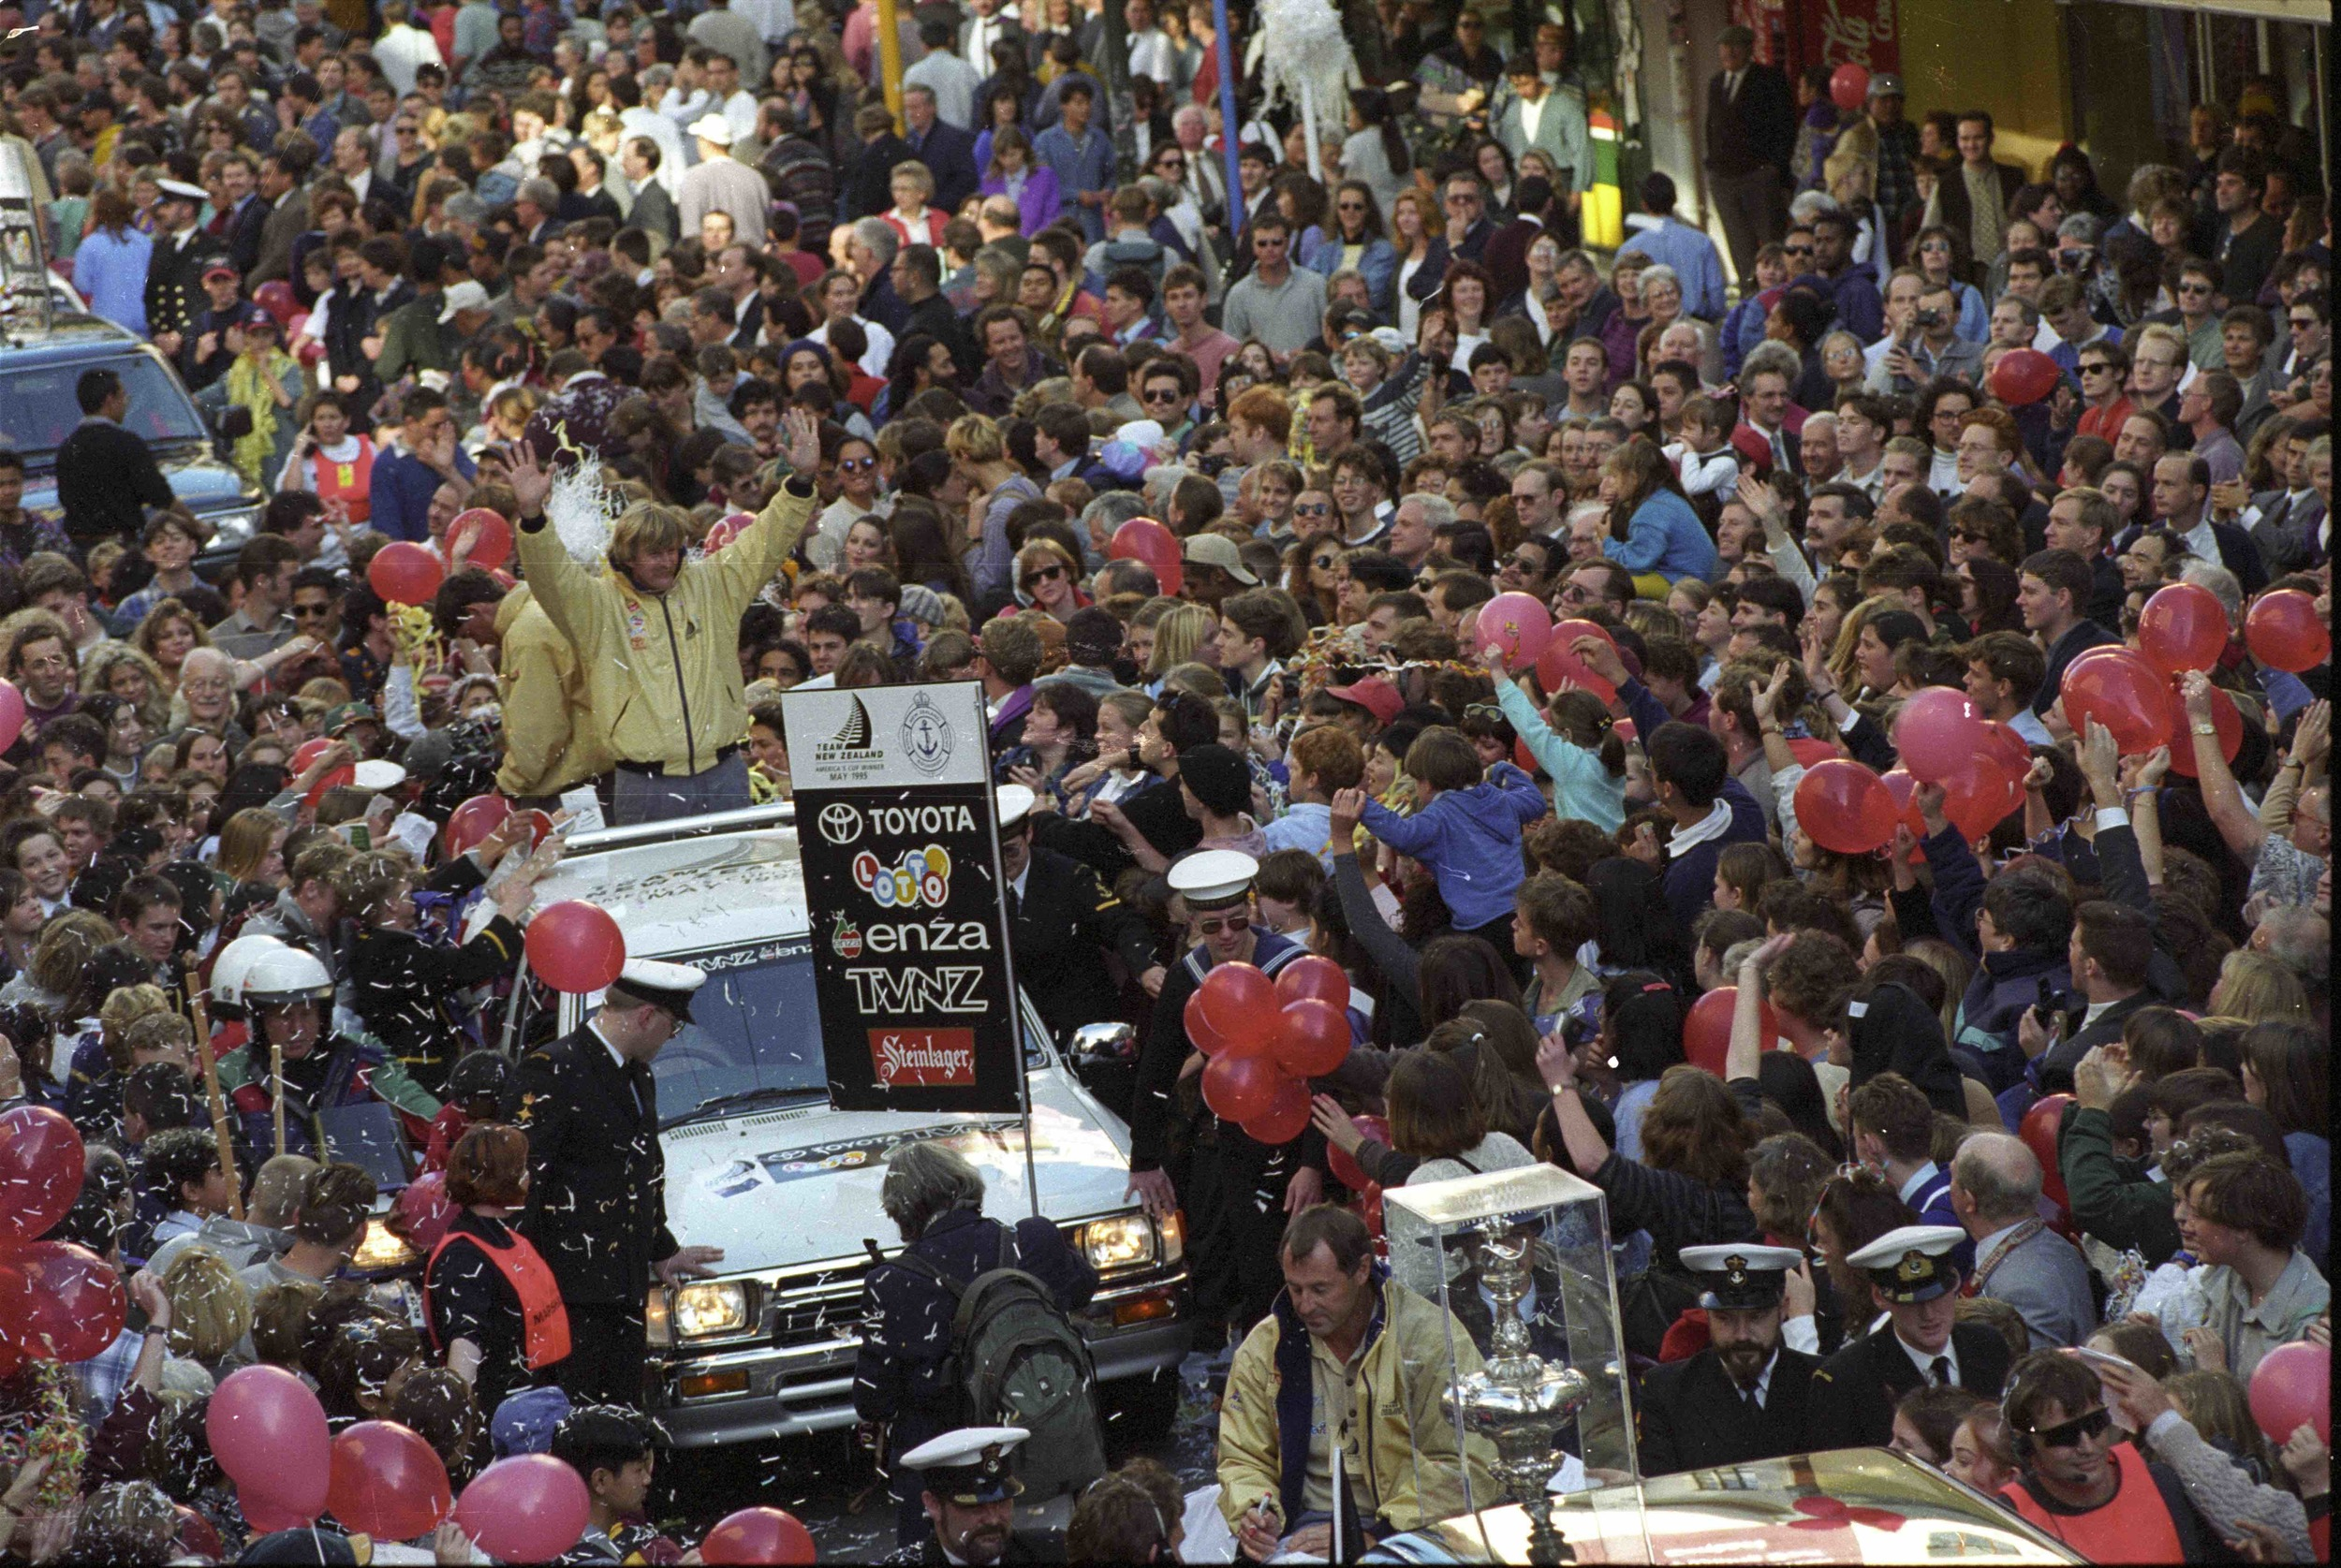 In Auckland more than 400,000 turned out for the Team New Zealand Americas Cup Victory Parade in 1995